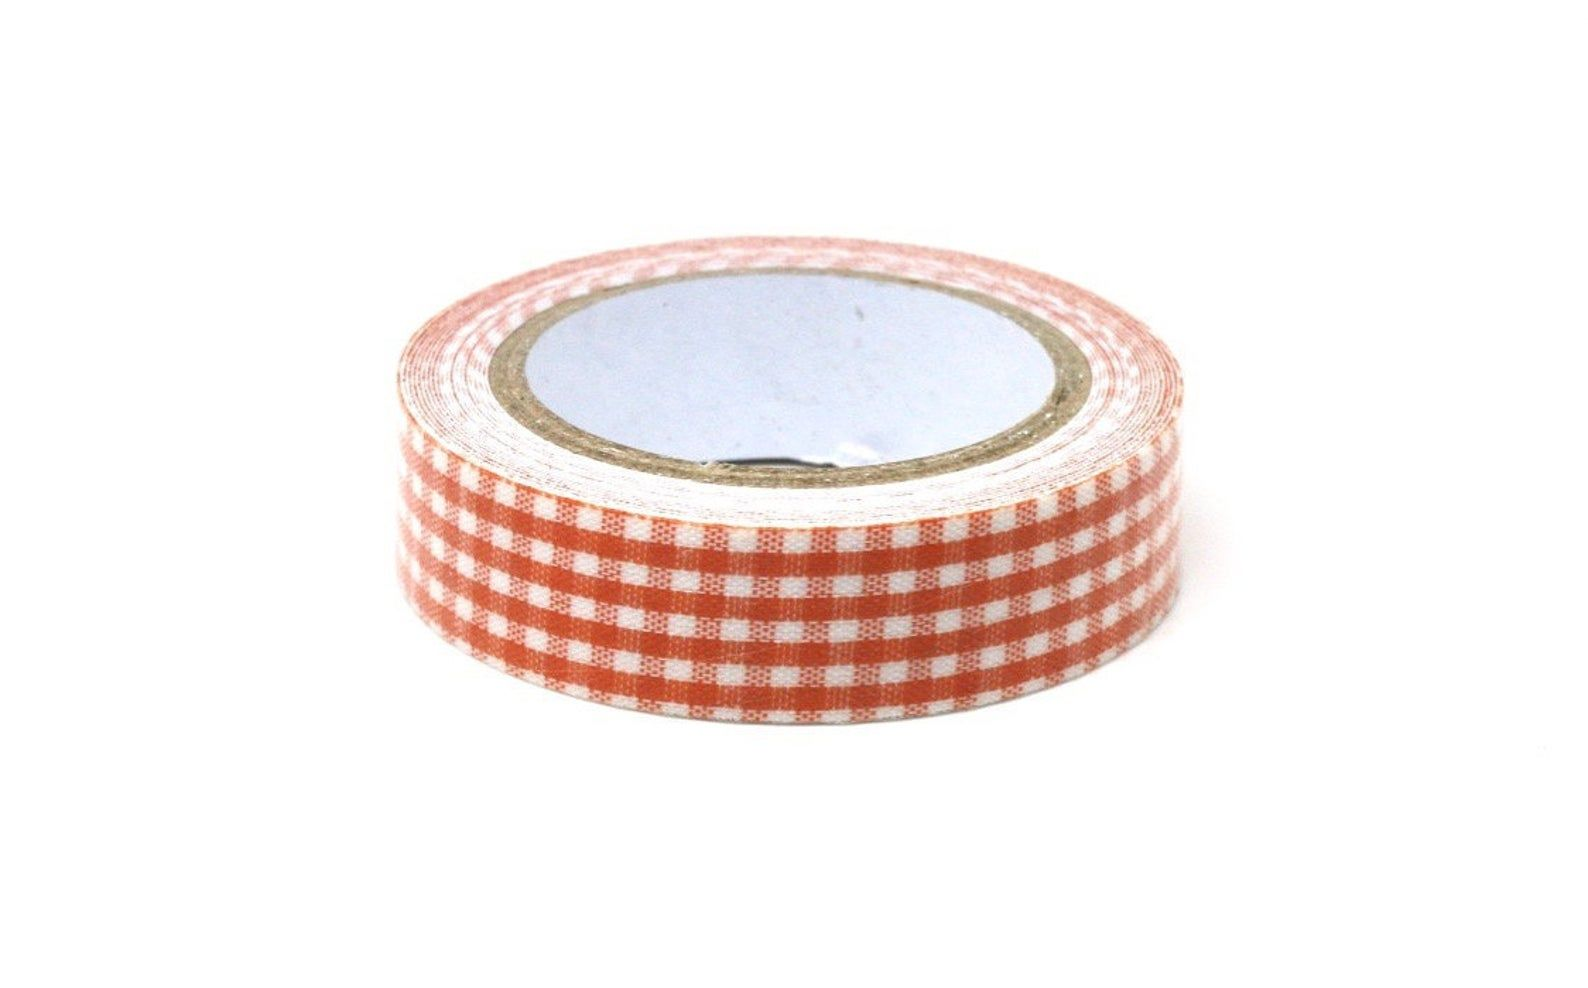 3m Masking Tape Red Brown Checkered Cotton Ribbon Decoration Ribbon Color Brown White Size 15mm Tb004 In 2020 Ribbon Decorations Masking Tape Ribbon Colors